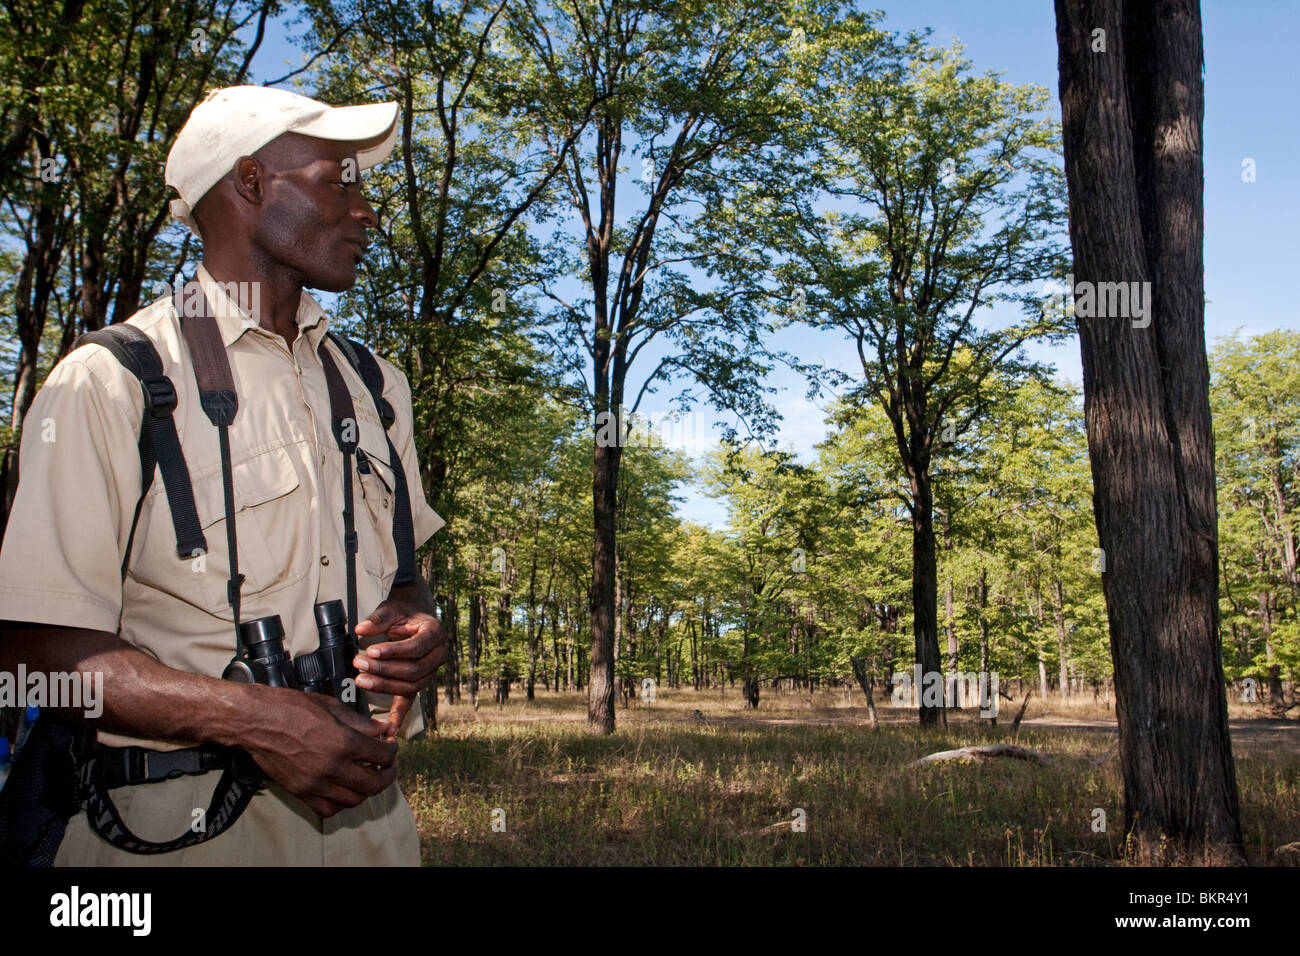 Malawi, Upper Shire Valley, Liwonde National Park. A safari guide interprets the Mopane ecosystem bordering the - Stock Image